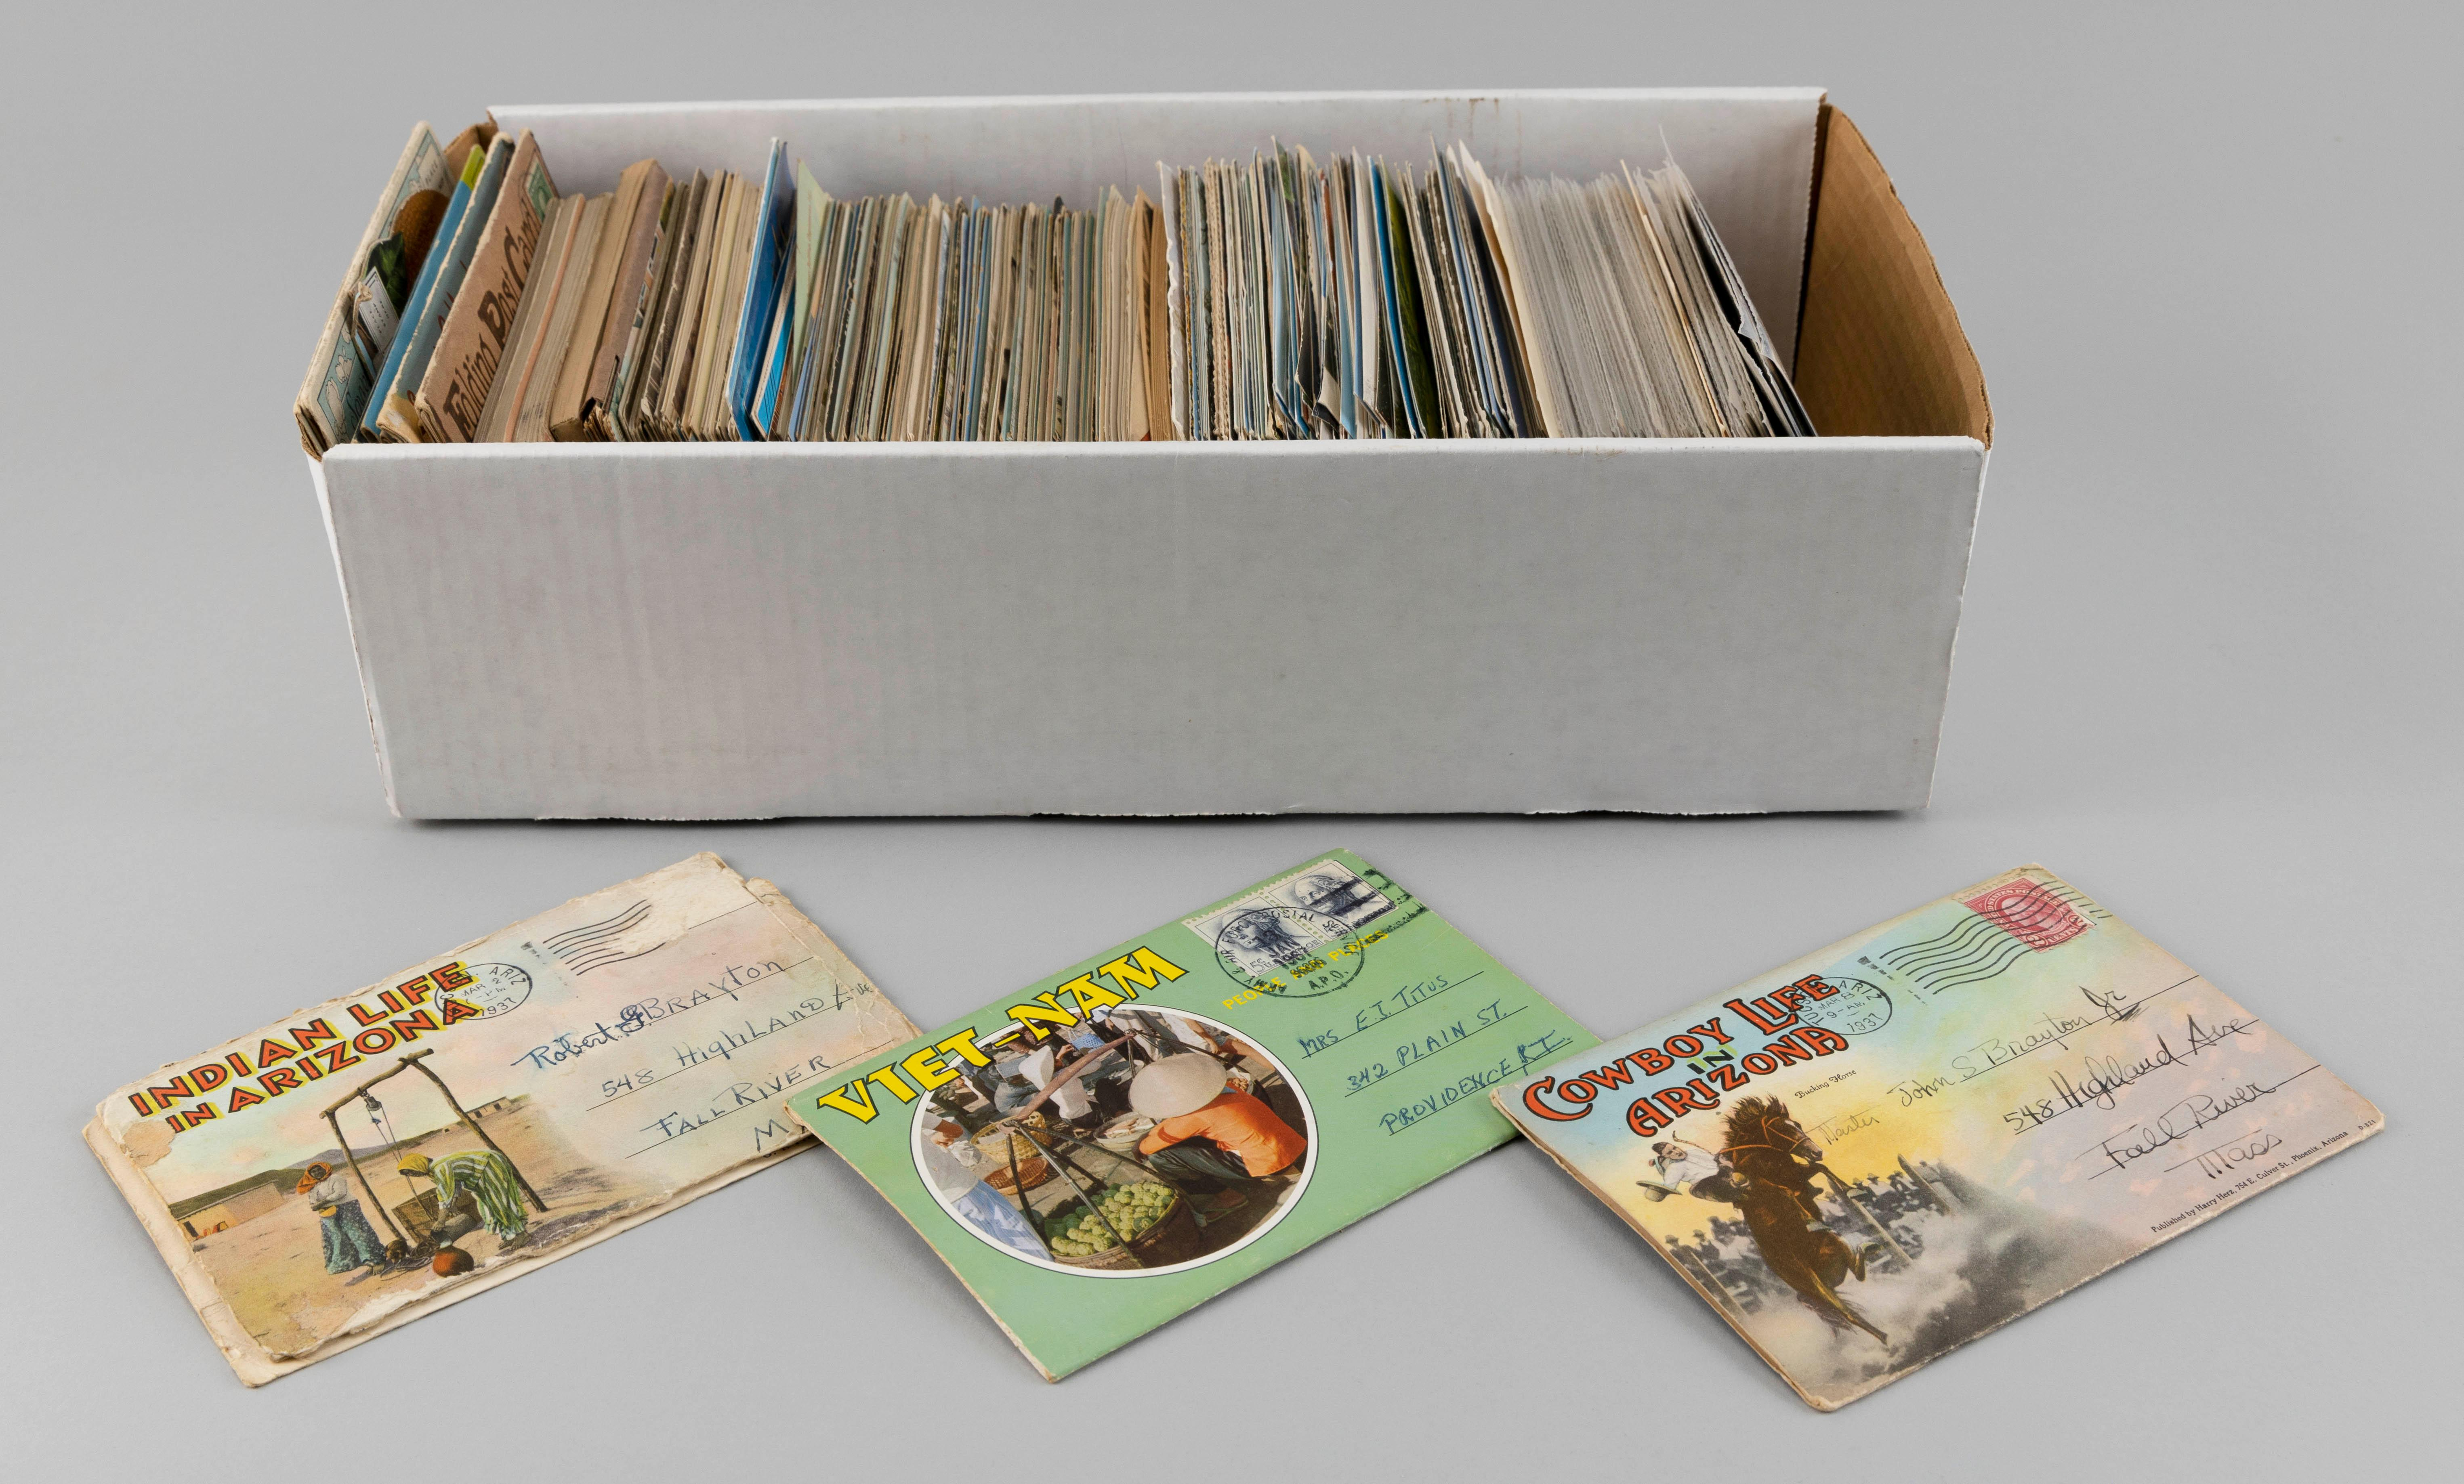 (FOREIGN) APPROX. 600 POSTCARDS In a postcard box. Includes: 82 incline railroads, shipping and transportation themes, recreation (h...